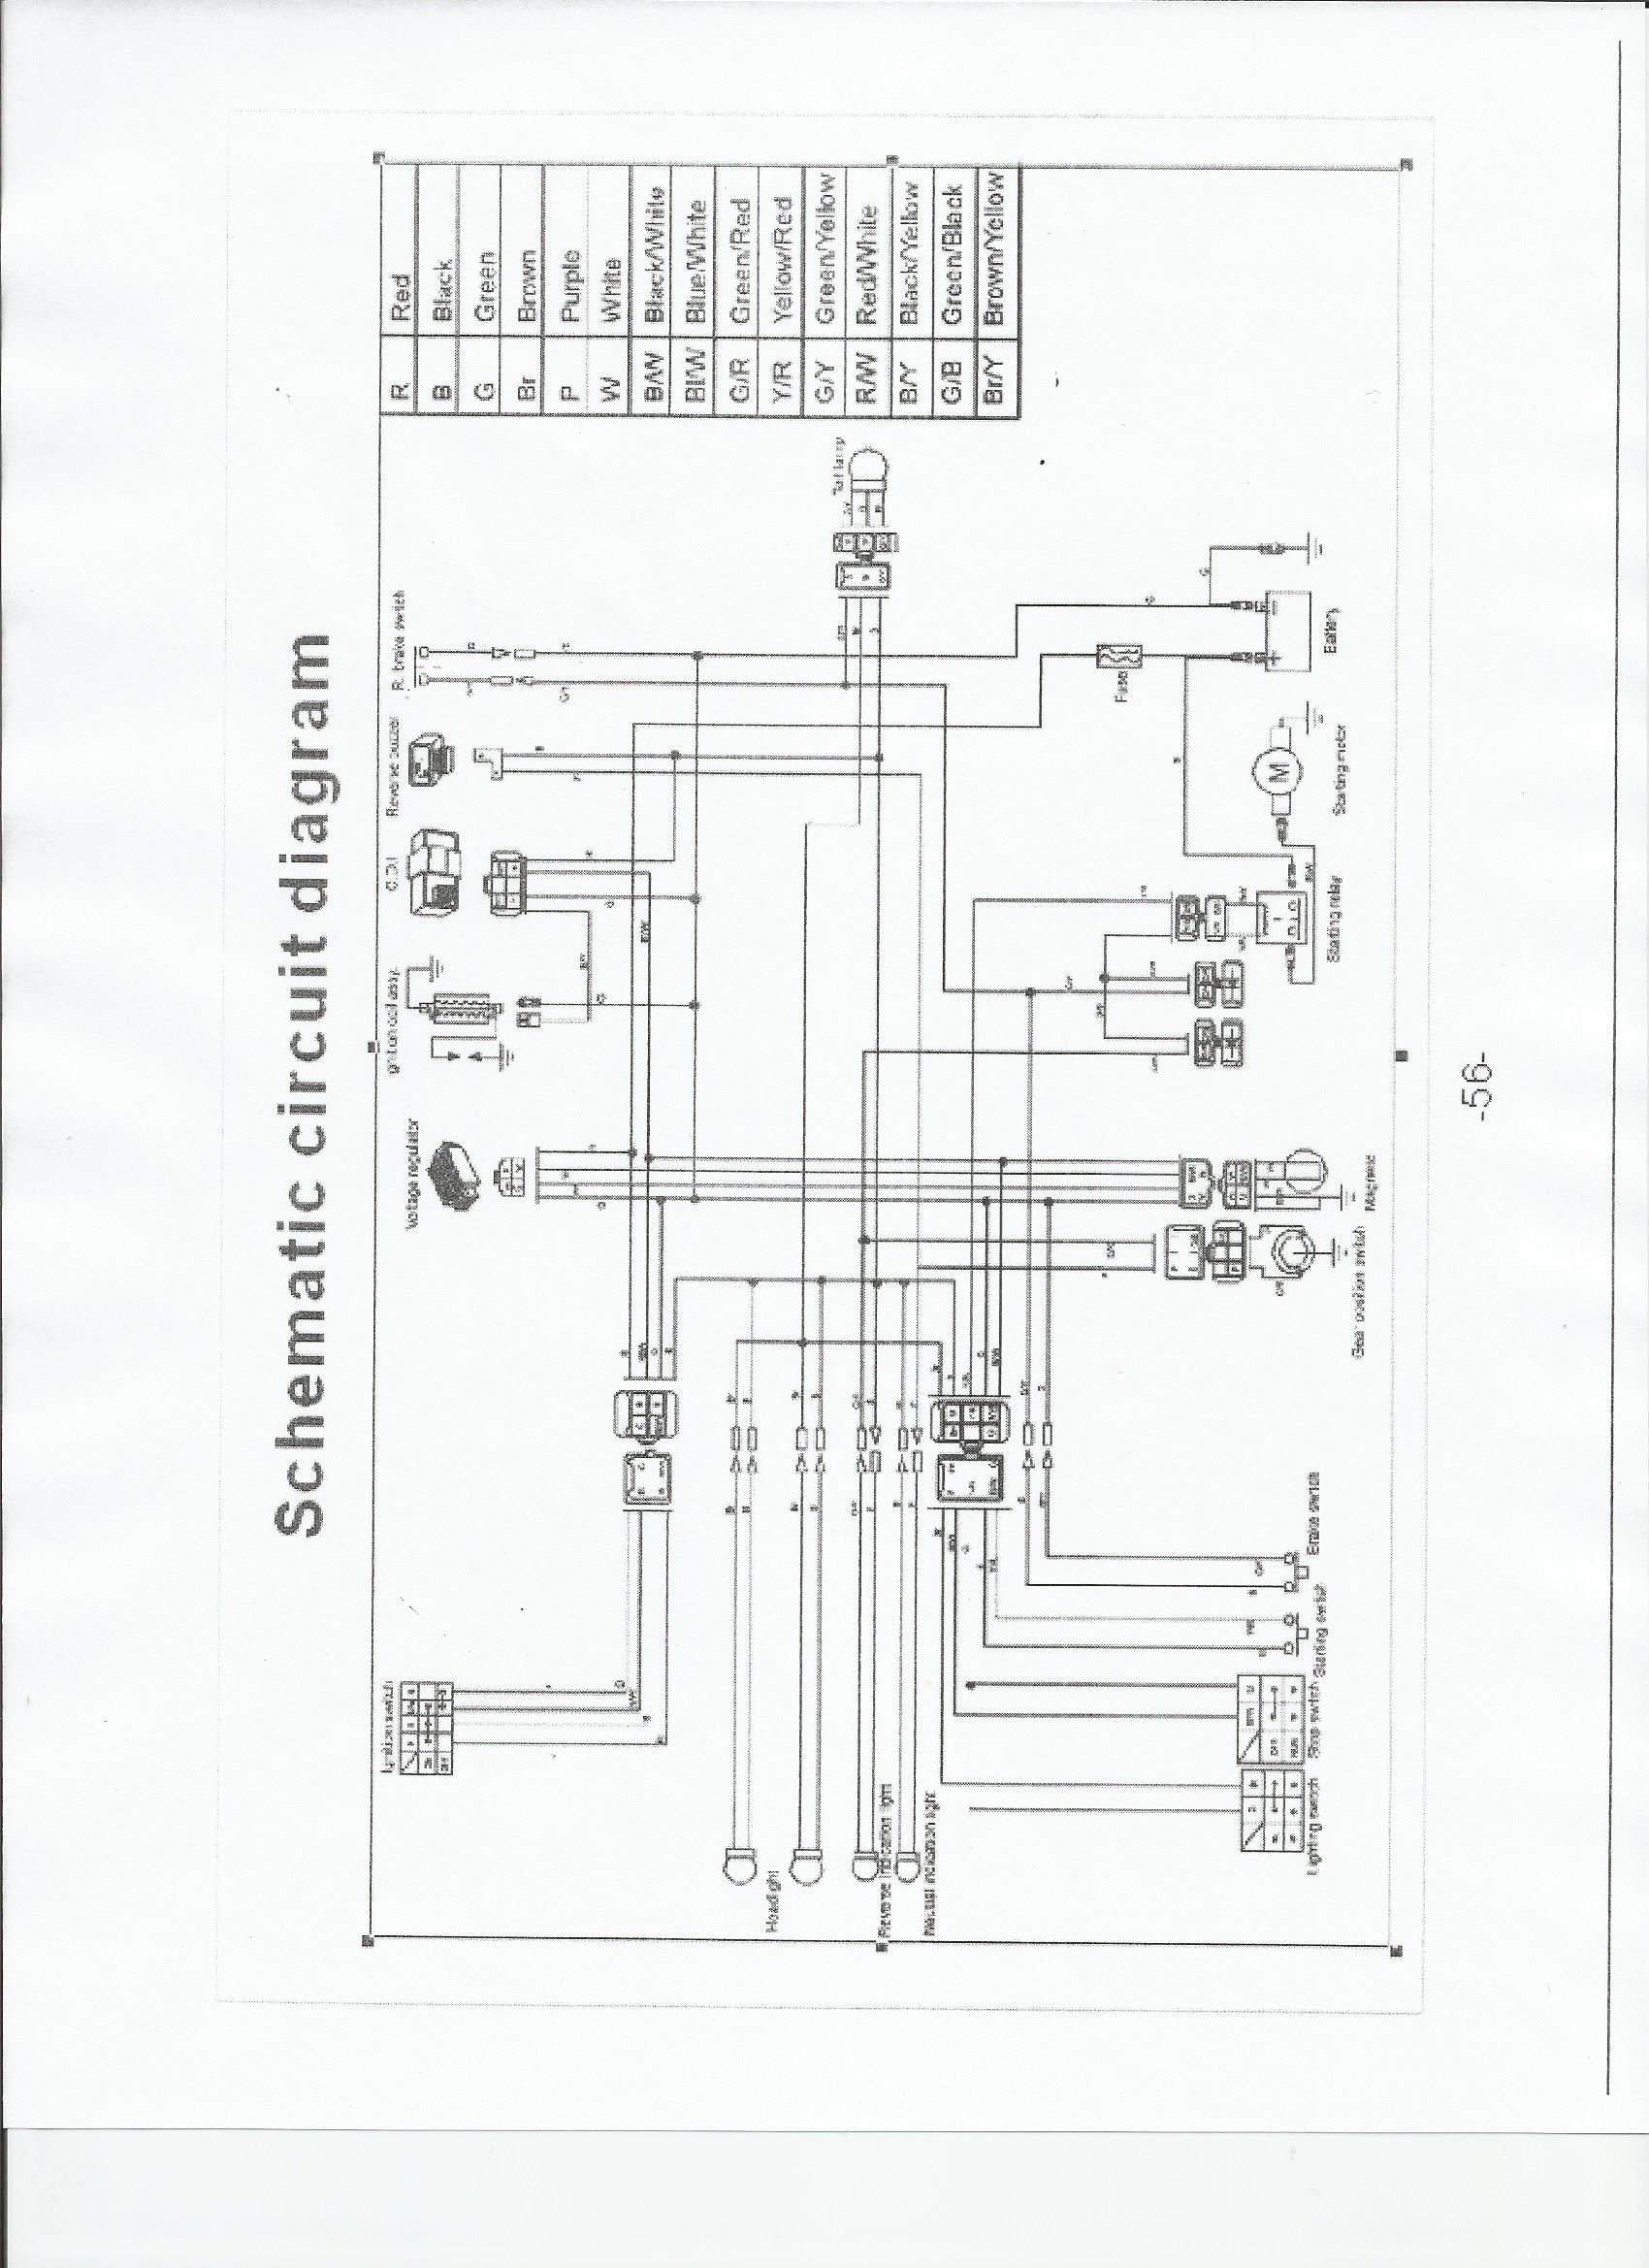 tao tao wiring schematic chinese quad wiring diagram chinese atv ignition schematic \u2022 free 150Cc Scooter Wiring Diagram at webbmarketing.co